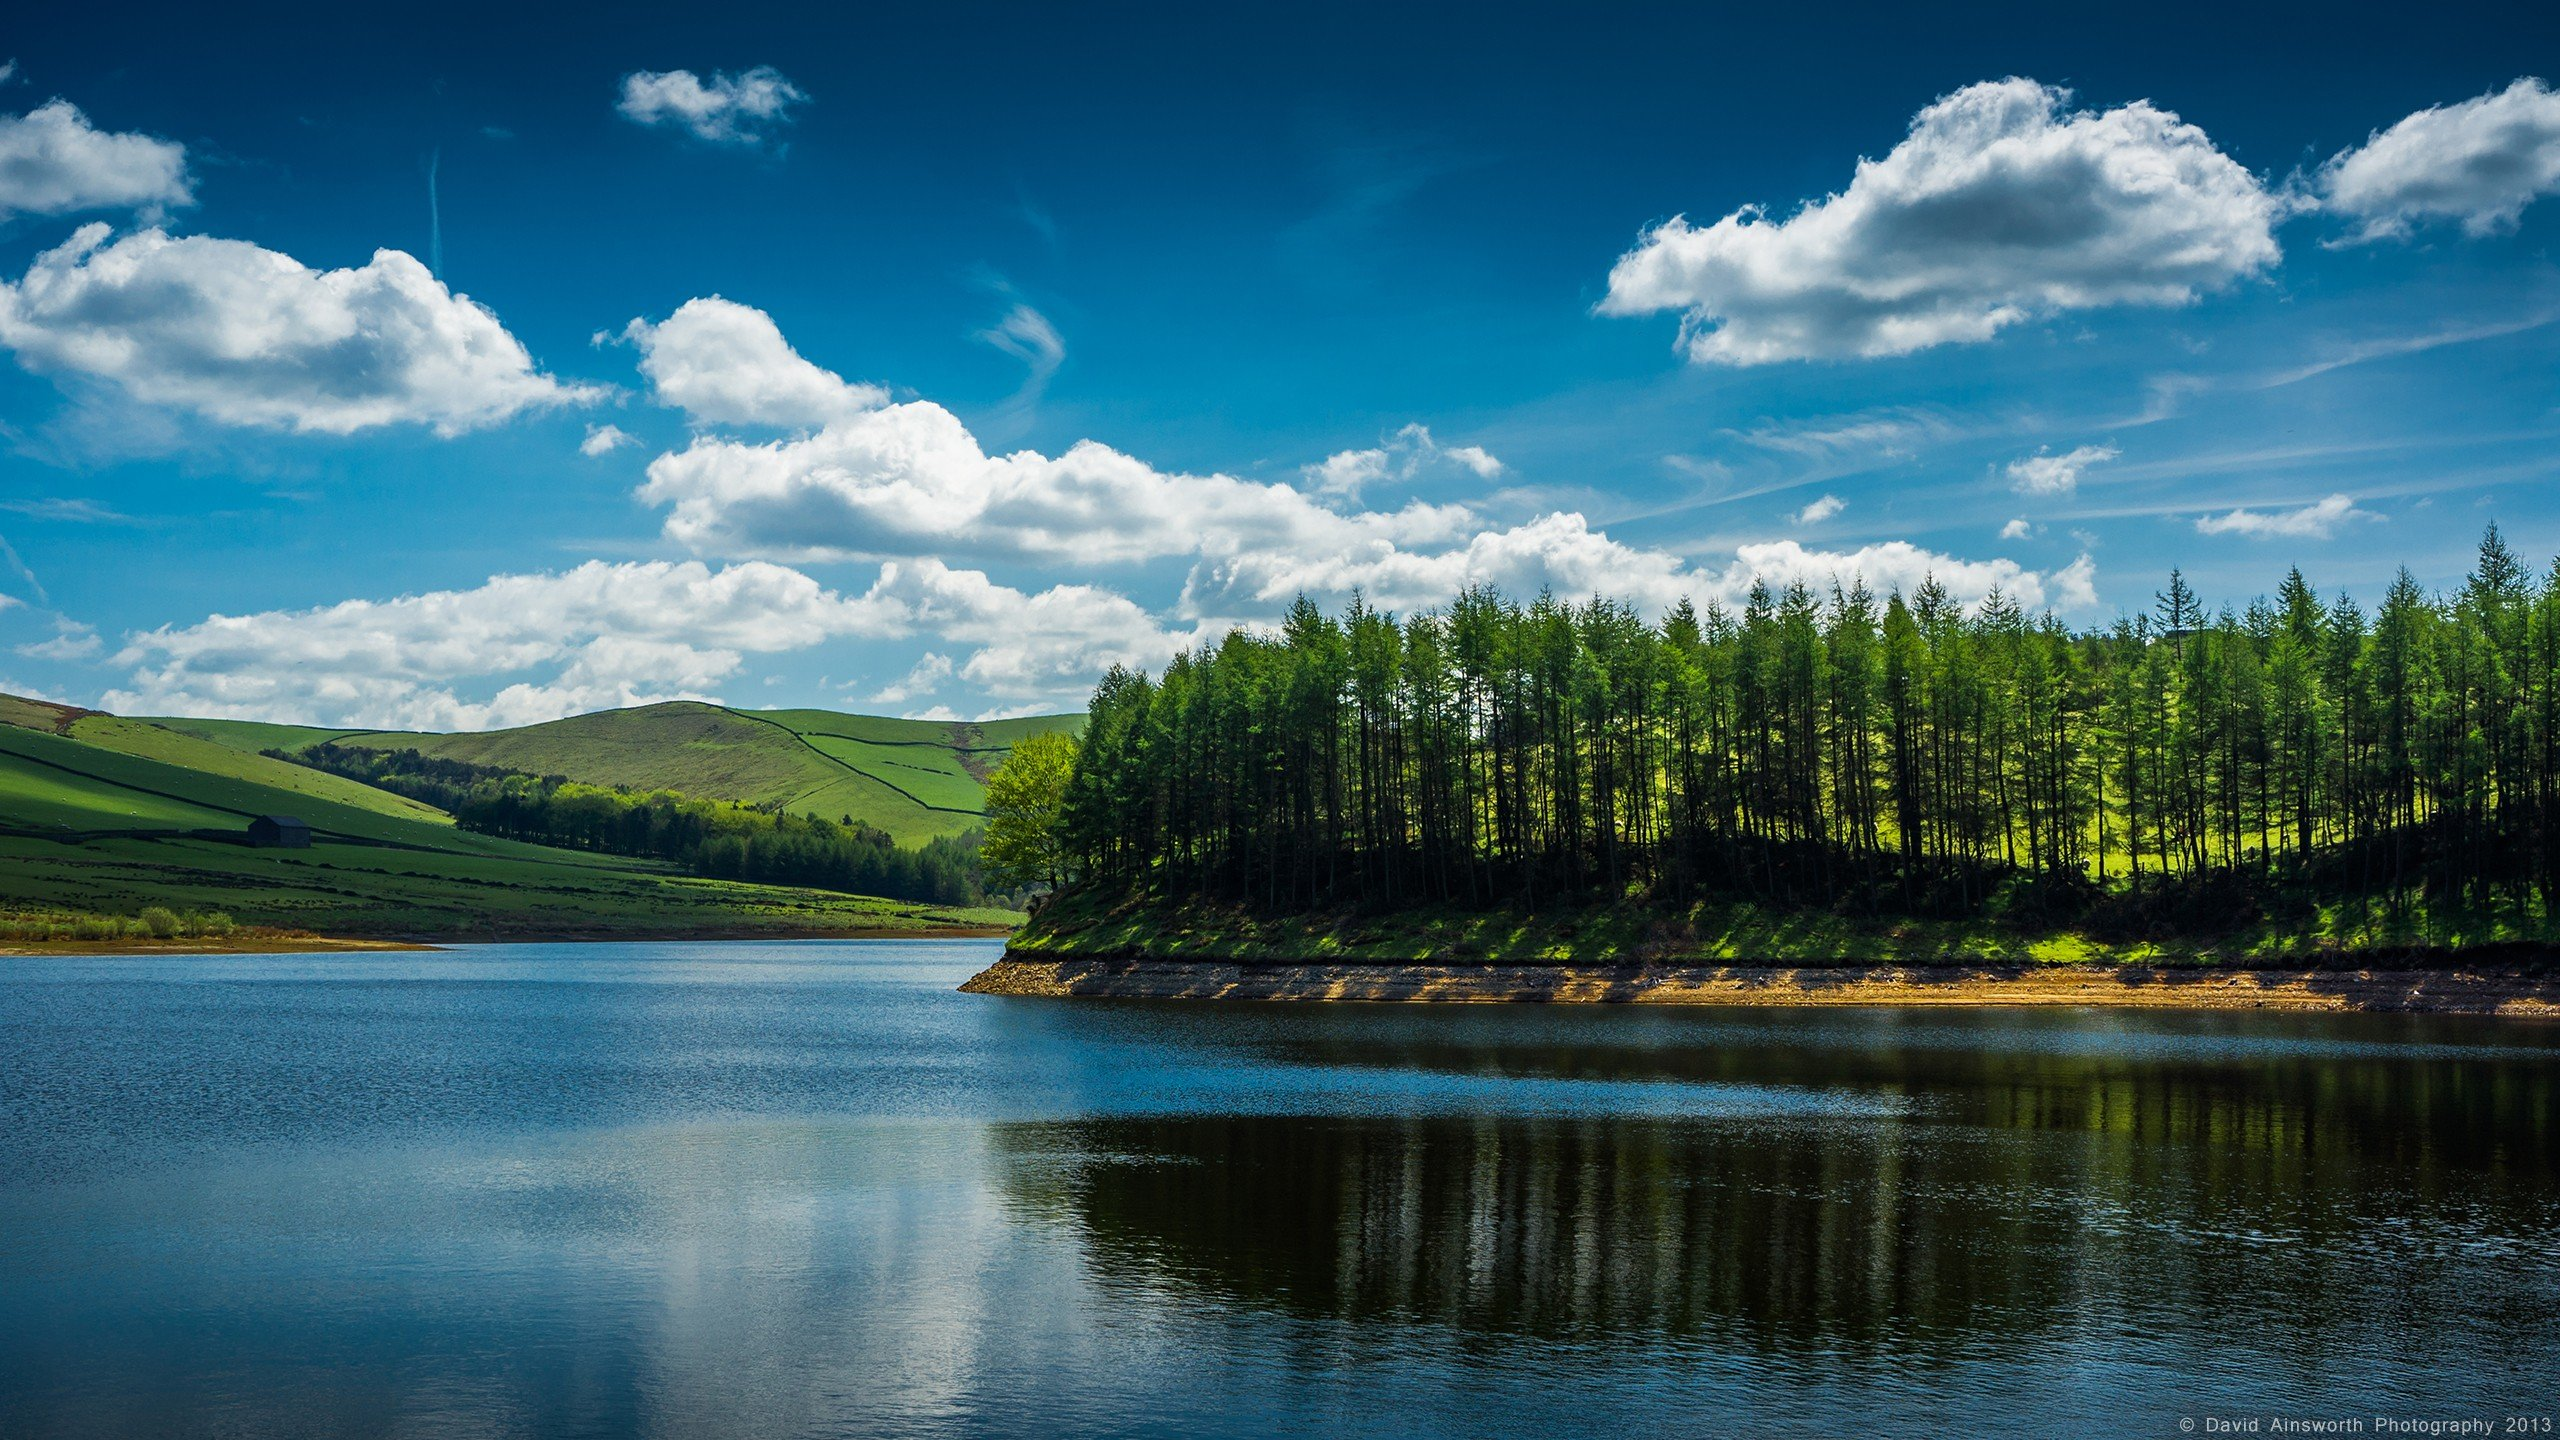 water landscapes nature trees islands lakes wallpaper On water landscape